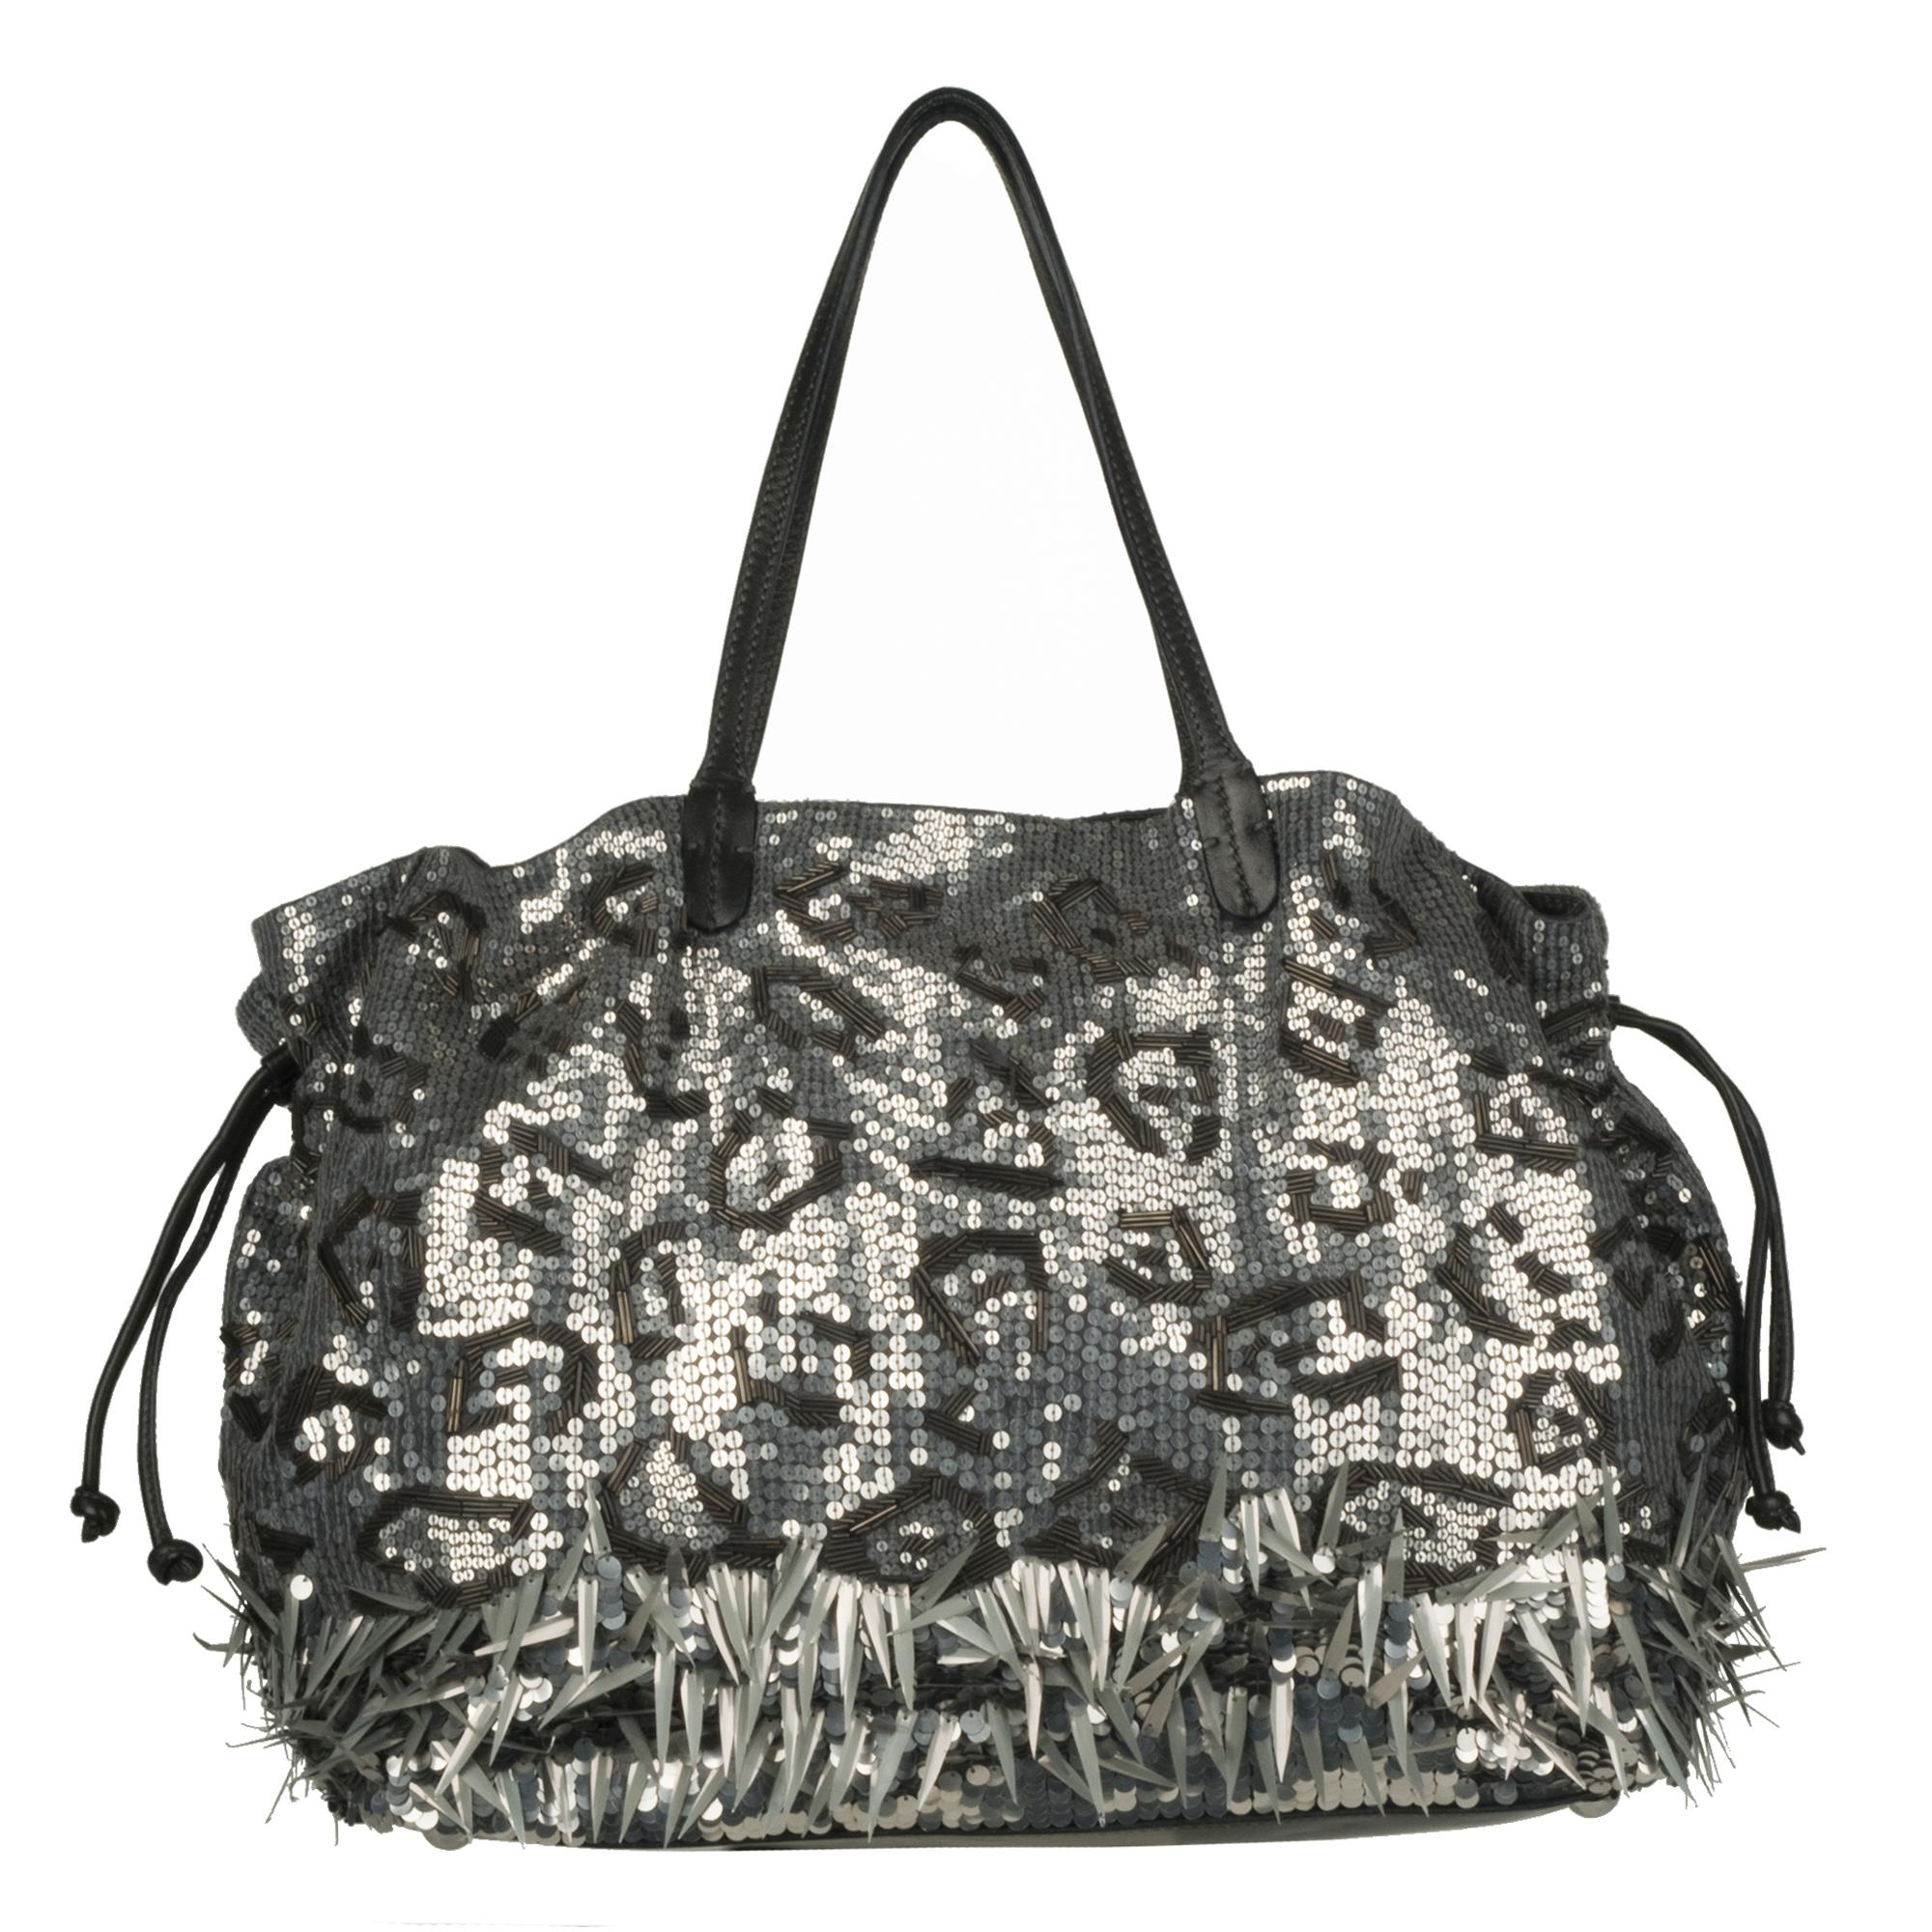 Valentino 7WB00611 Leather Sequin Embellished Shopper Bag